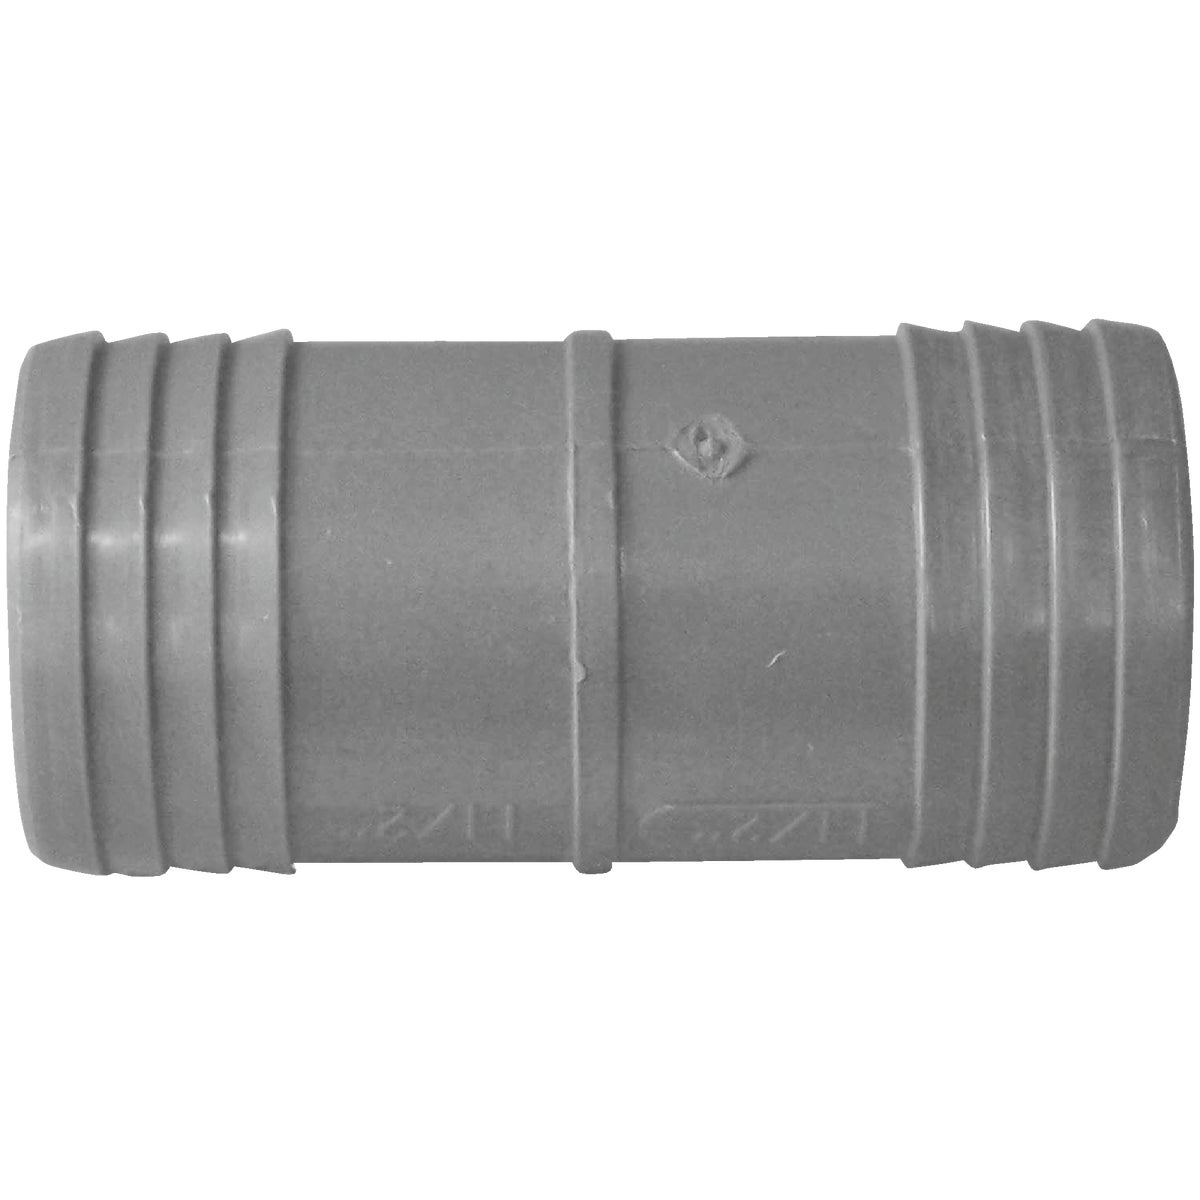 "1-1/2"" POLY INS COUPLING"